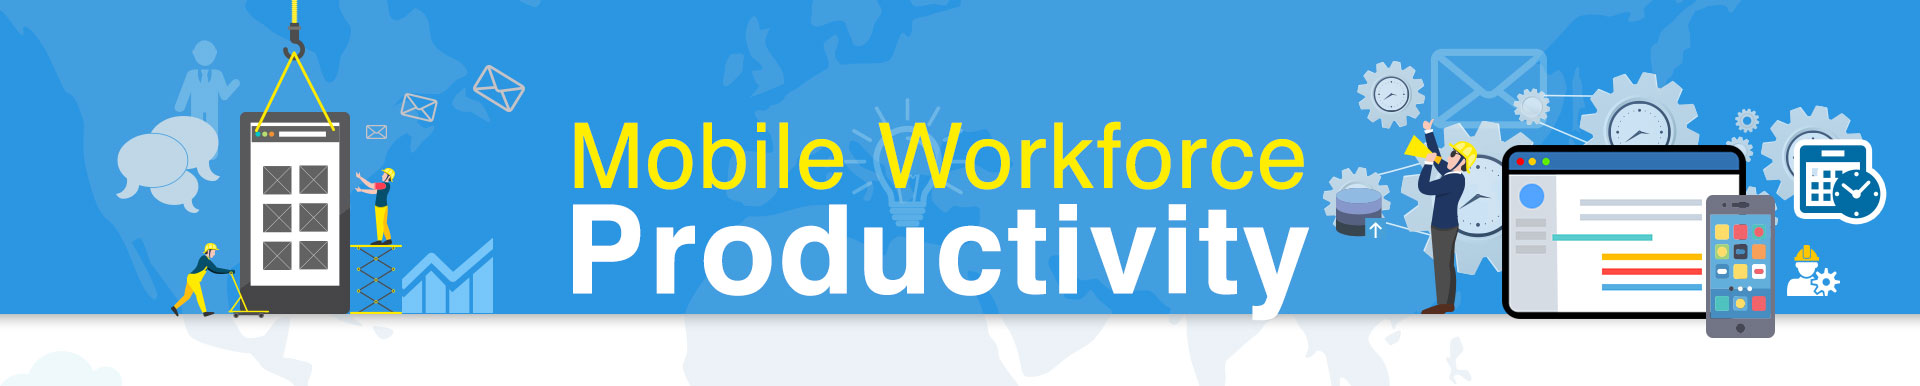 Mobile-Workforce-Productivity